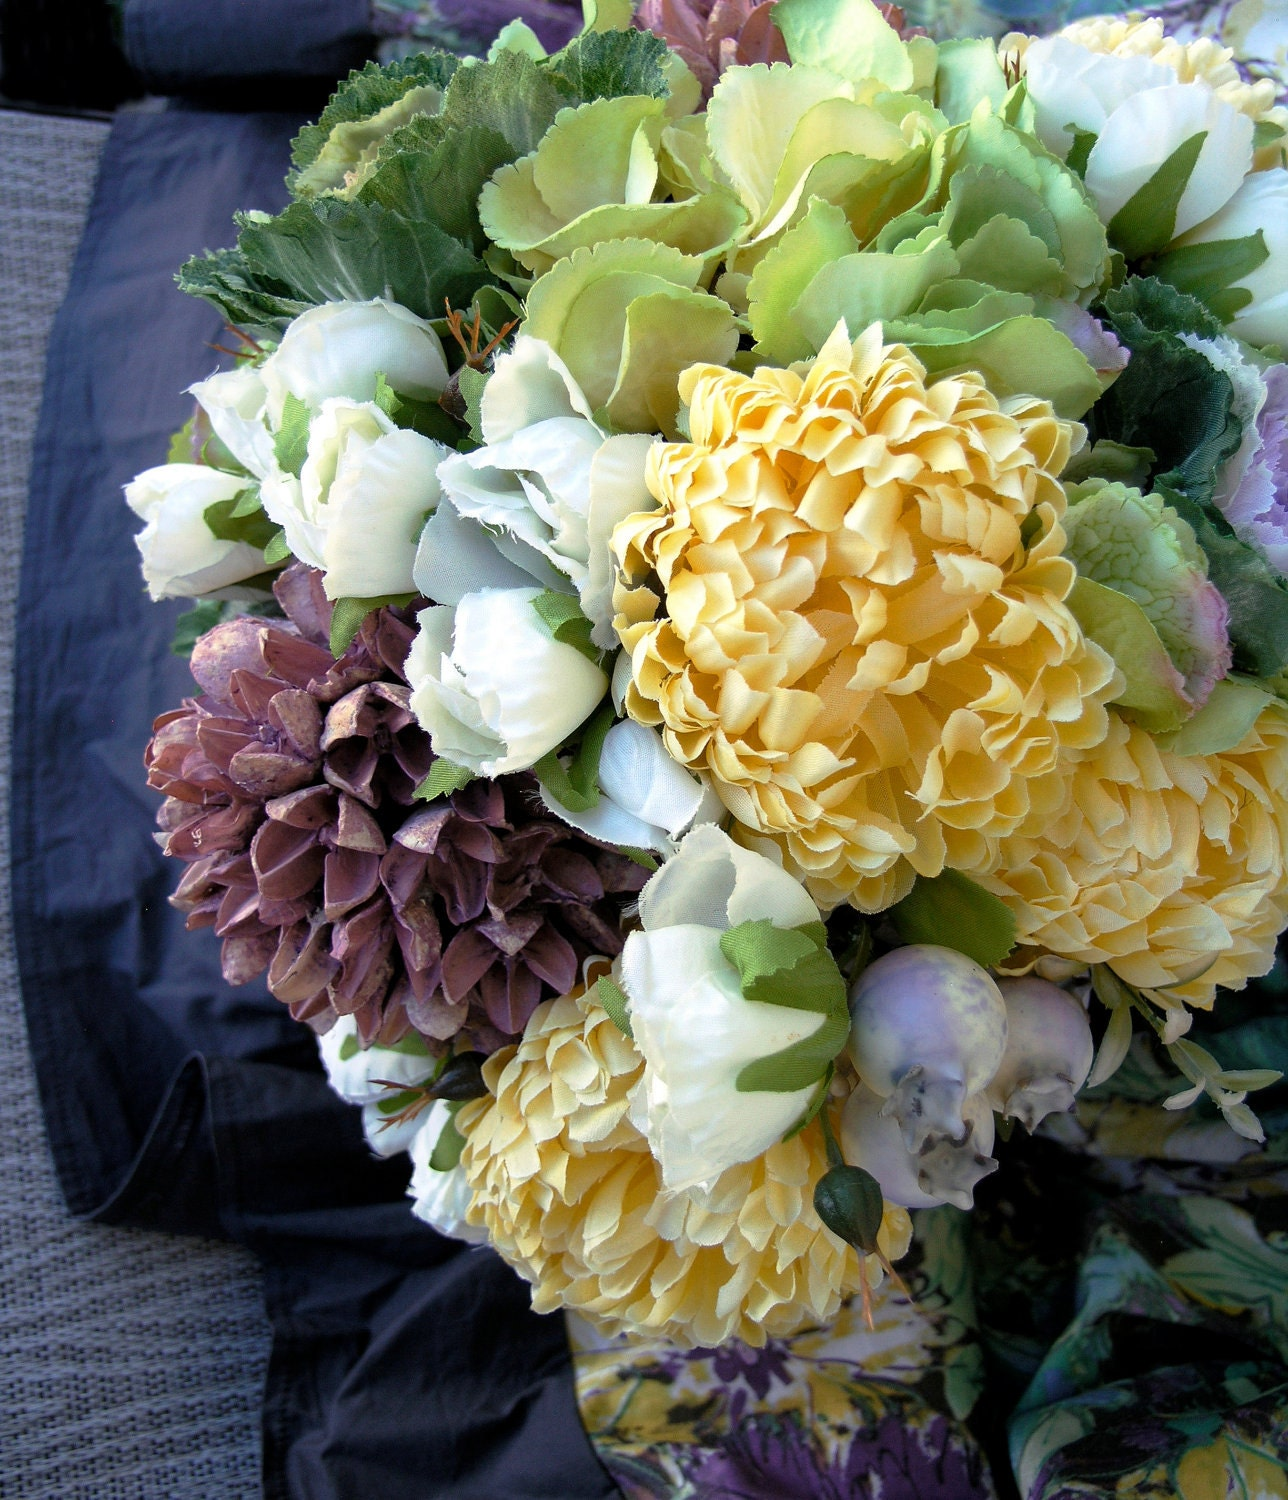 Butter Yellow Chrysanthemums Lilac Cabbage Garden Roses Lush Bridal Bouquet - ExpressionsFloral